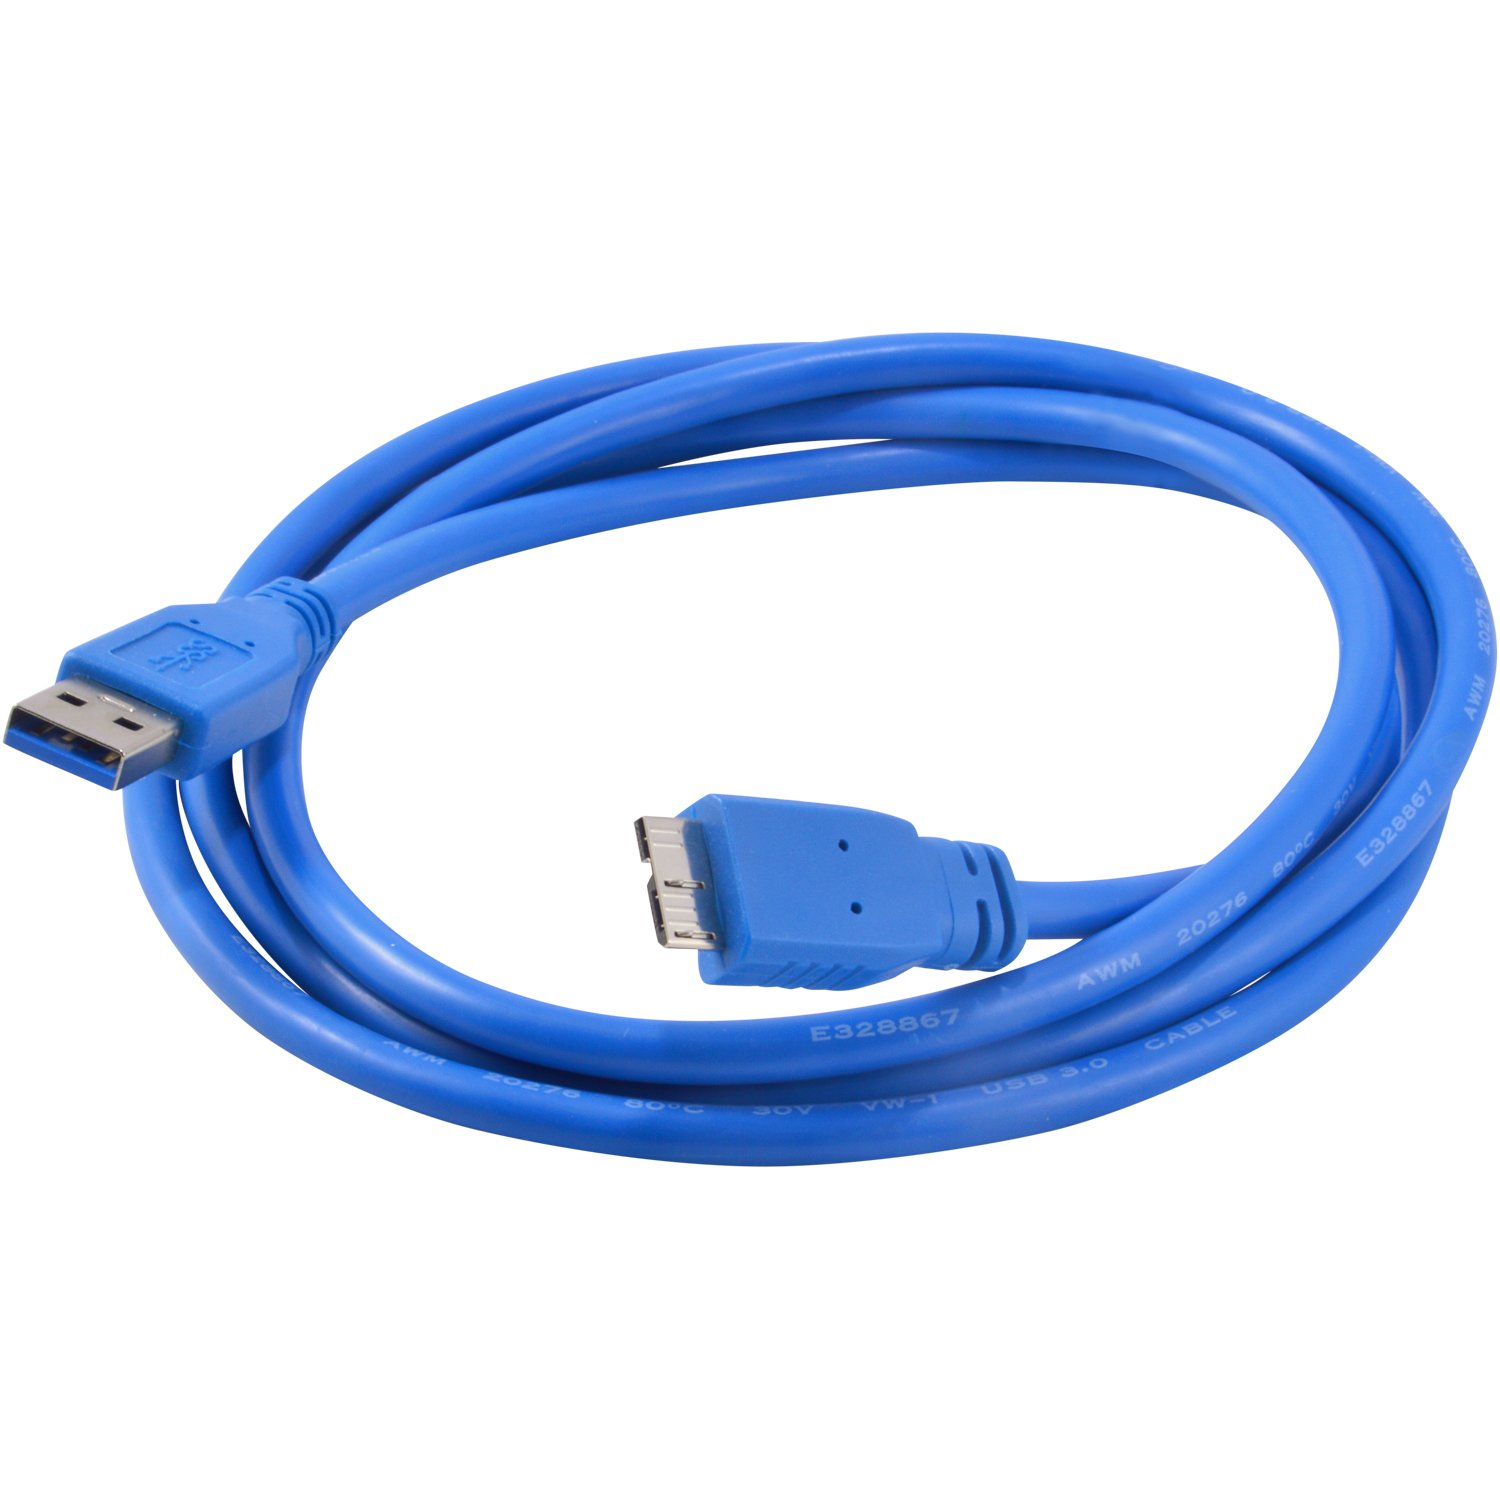 10X USB 3.0 A Male to Micro B Cable for External HDD / Tablet / Smartphone, Blue